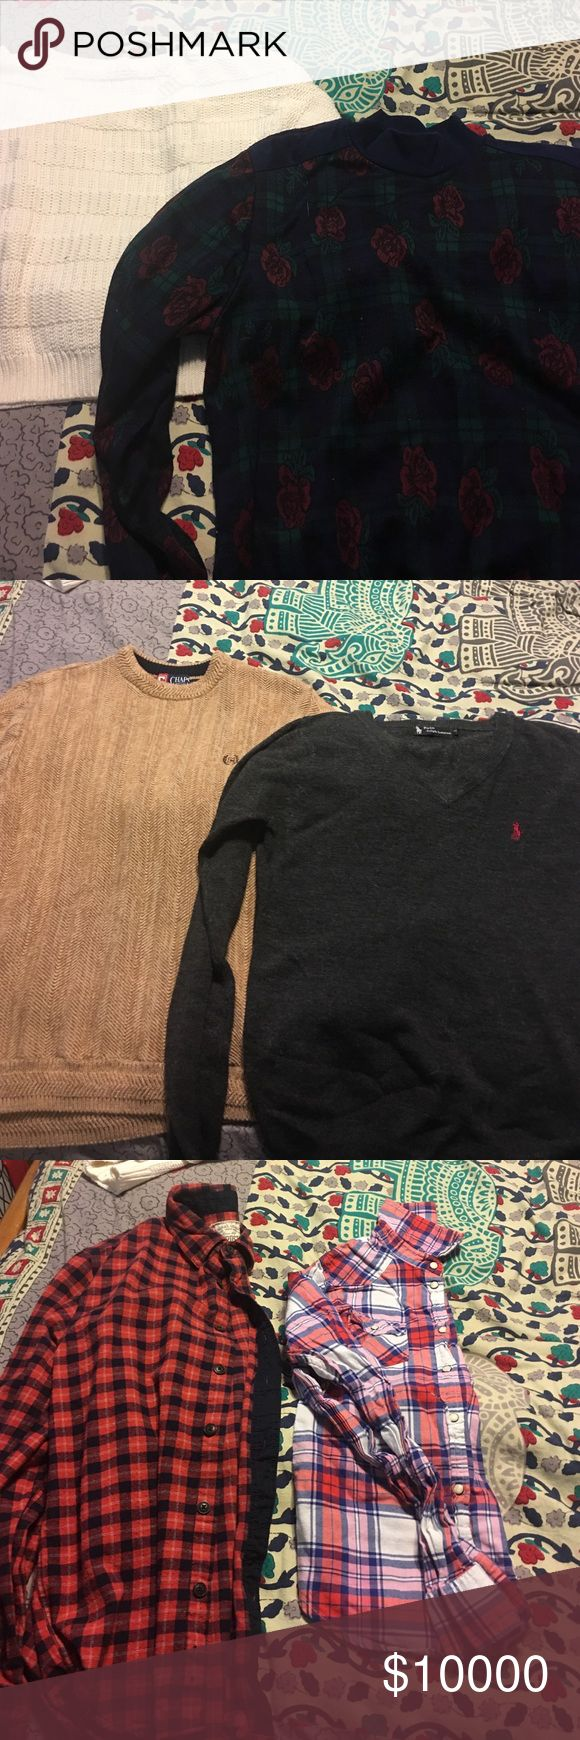 Not for sale Cream sweater: brand Caslon SP • Rose Sweater: Medium brand unknown • Tan Chaps Sweater: Men's small (one of my favs) • Polo Sweater: size Small (not sure if men's or women's but fits like a boyfriend tee • Red flannel: Aeropostale men's size Small • Pink Flannel: AE size Small • Blue flannel: Levi's women size Small • Black flannel: Men's small Sweaters V-Necks